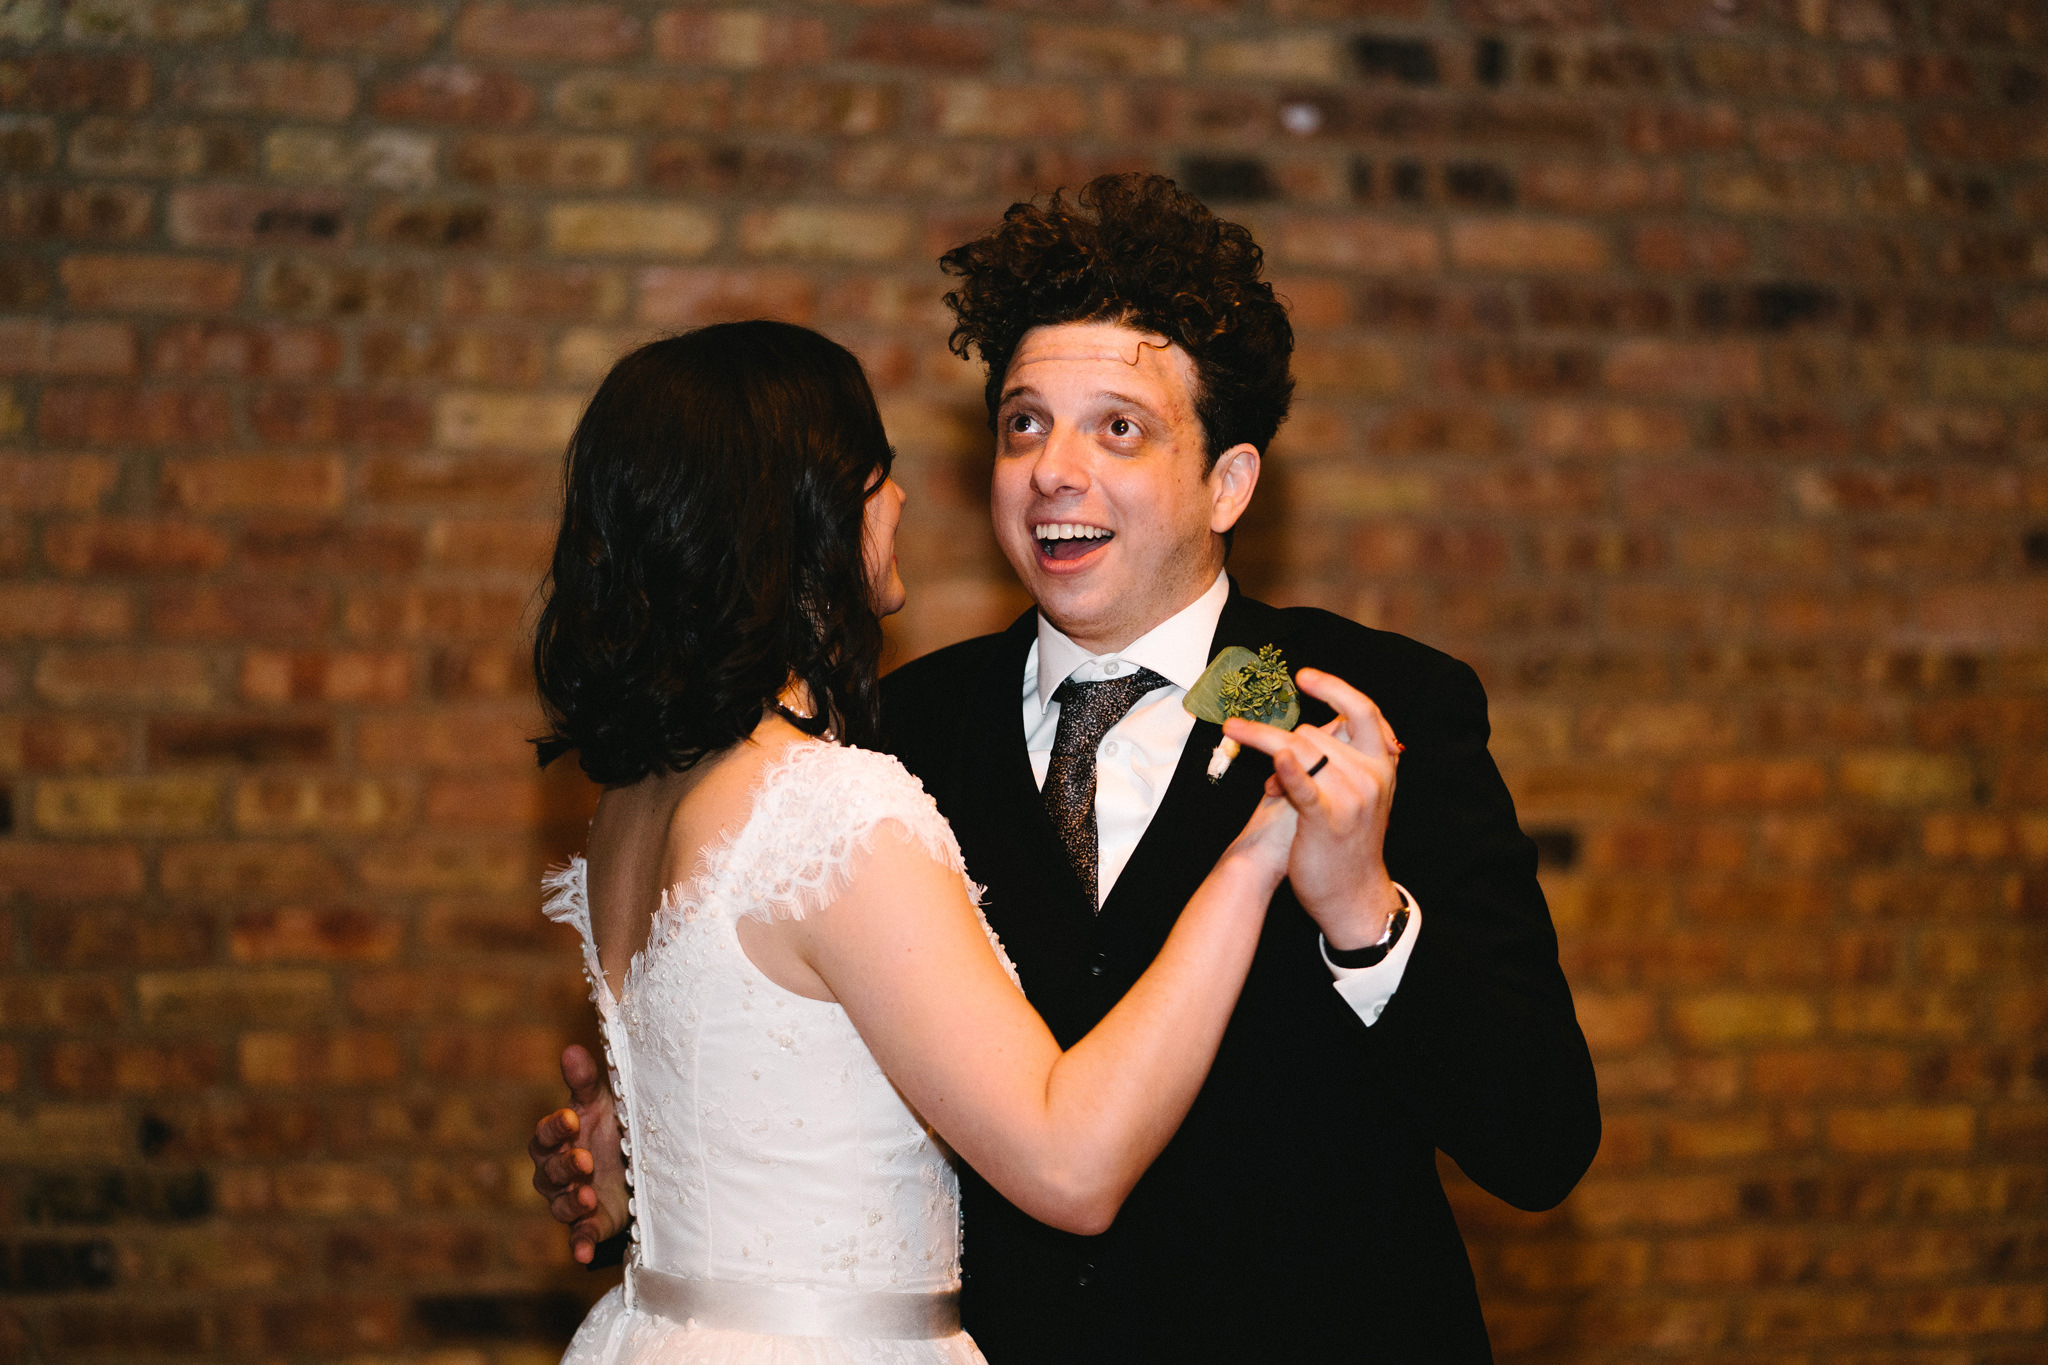 118-rempel-photography-chicago-wedding-inspiration-west-loop-fulton-market-caitlin-max-loft-lucia-venue-lindsey-marino-city-bbq-dana-hotel-and-spa.jpg